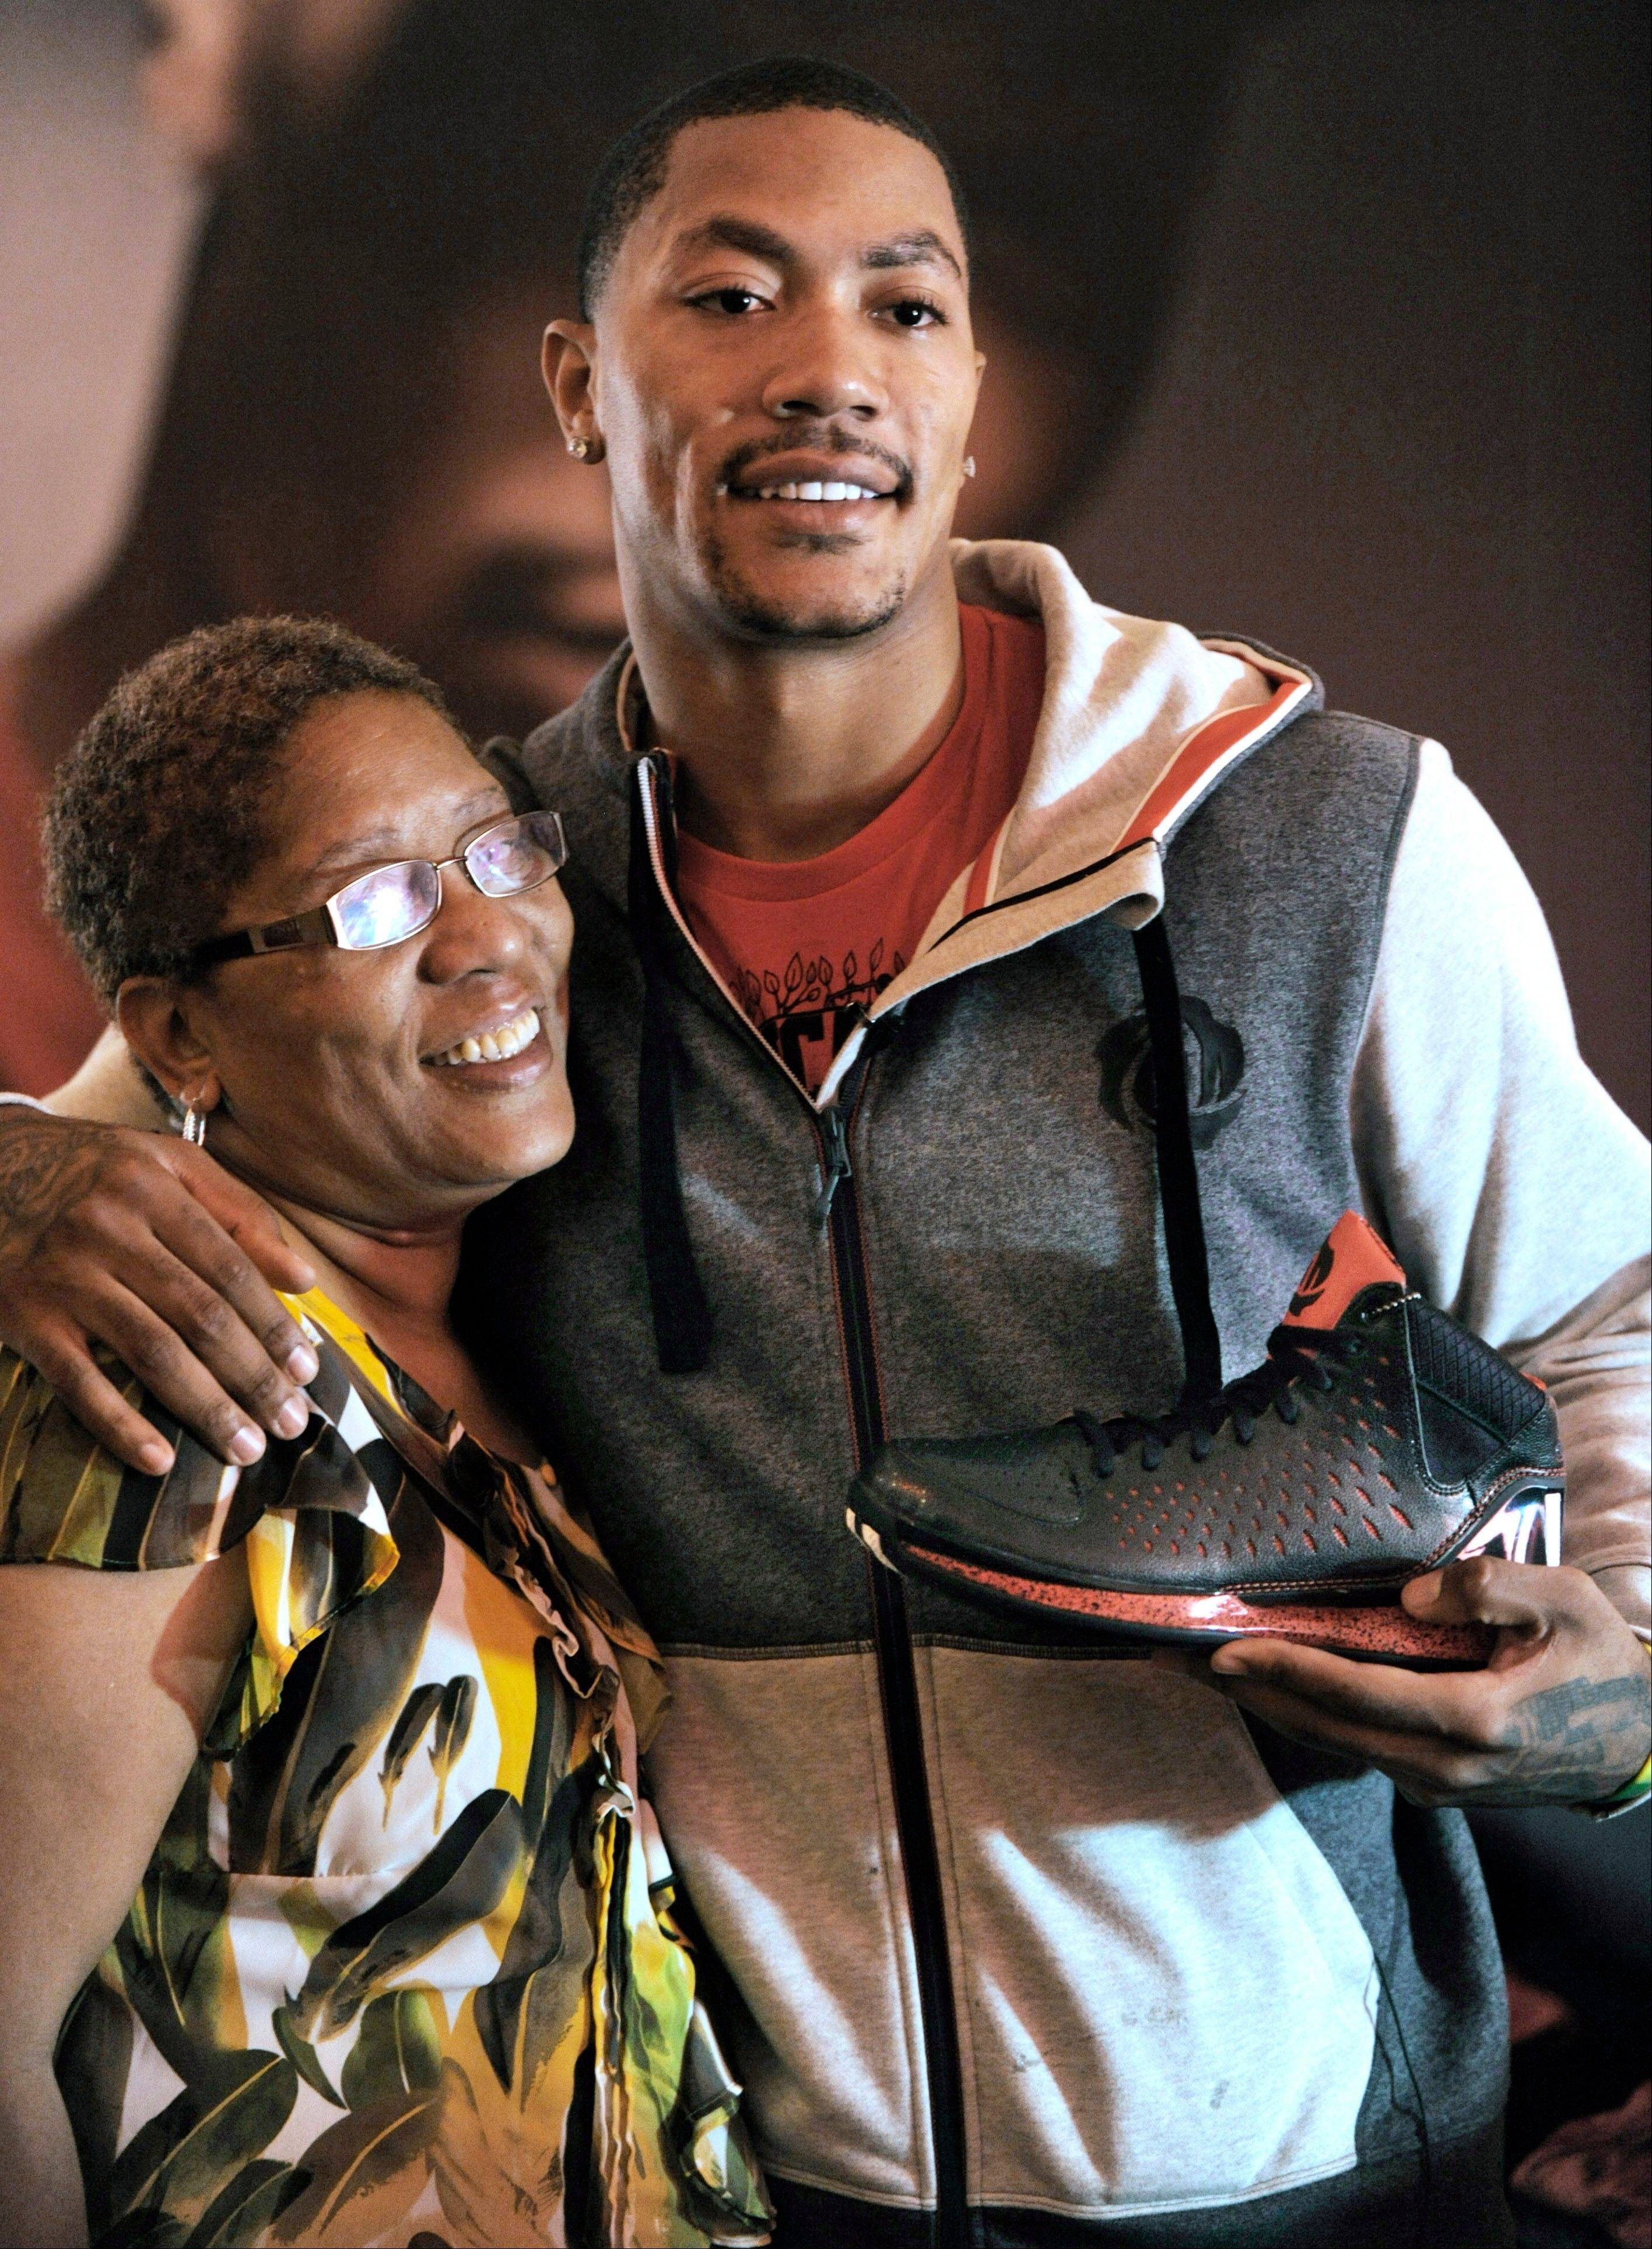 Bulls guard Derrick Rose, shown here with his mother Brenda after unveiling his new shoe the adidas D Rose 3, shows the kind of emotions that endear him to Chicagoans, says Mike North.